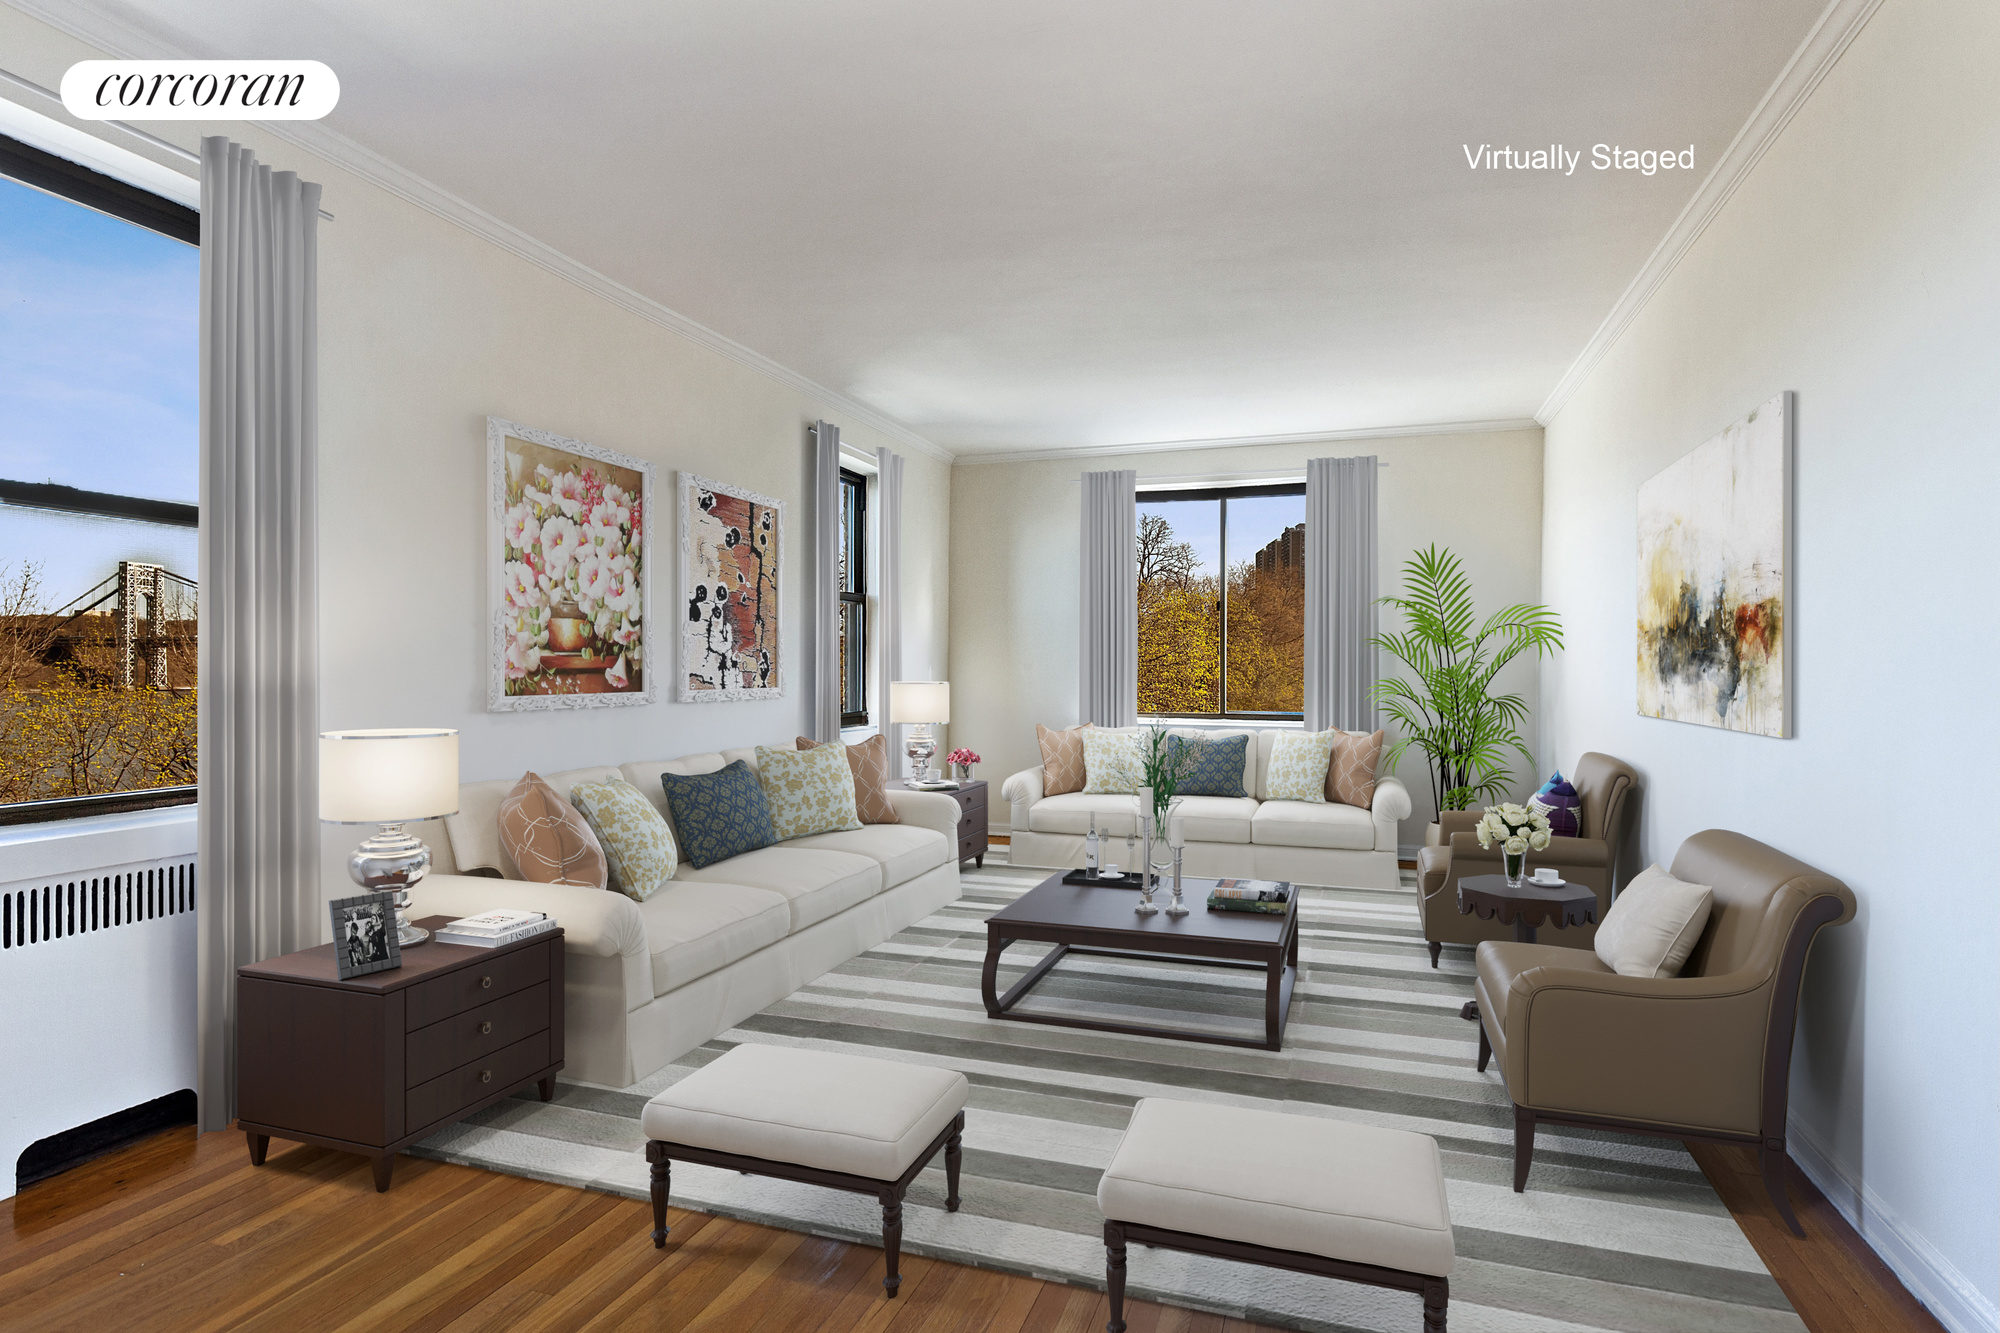 159-34 RIVERSIDE DRIVE WEST, 5A, Living Room Virtually Staged